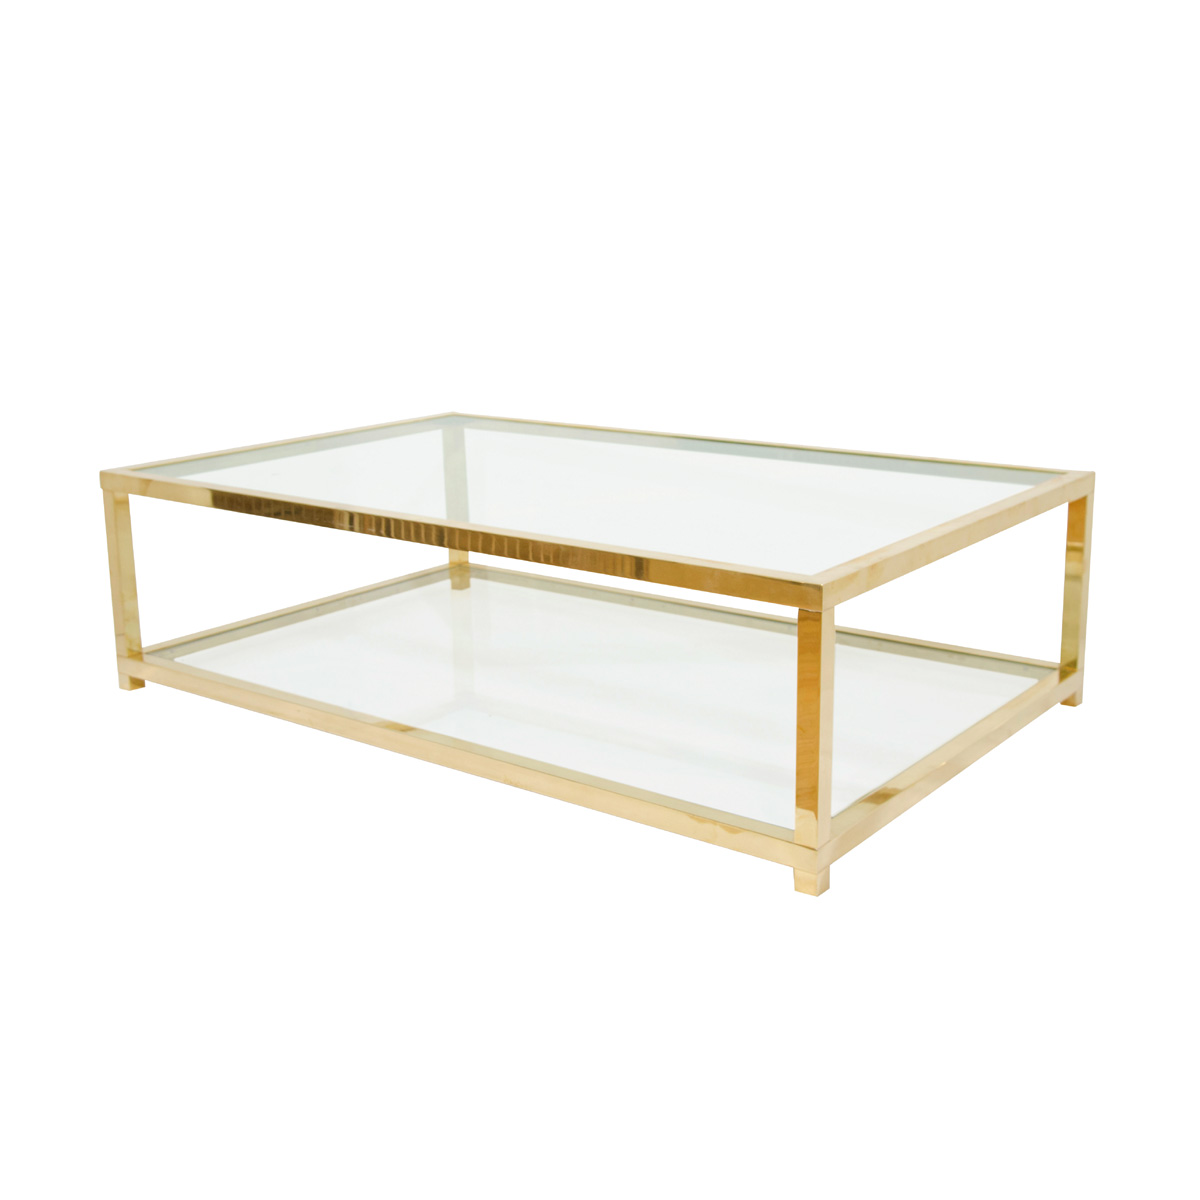 Antique Brass And Glass Round Coffee Table: Two-tiered Brass And Glass Coffee Table